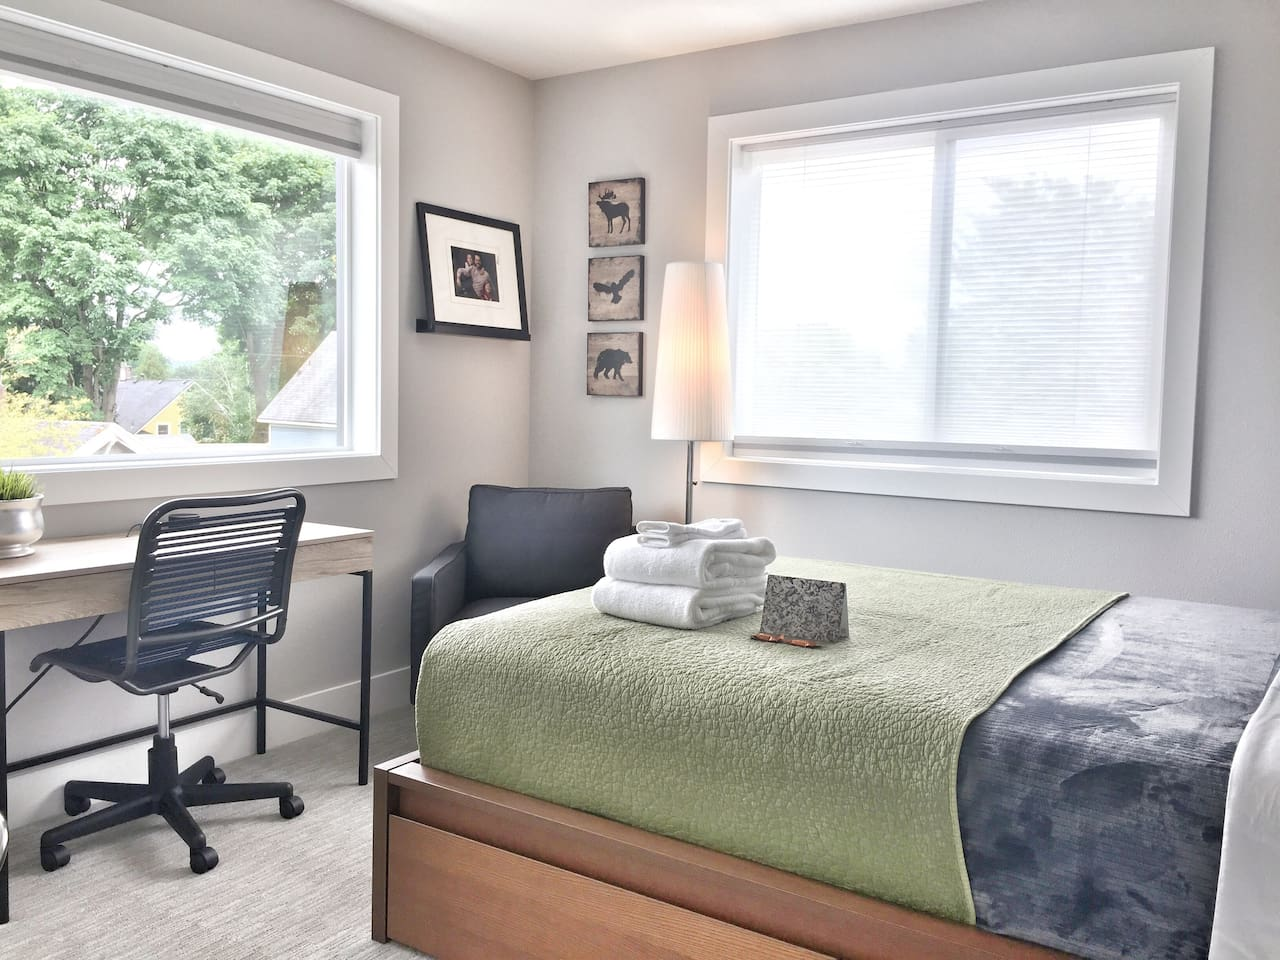 This room features a queen size memory phone bed, linens, lamp, side chair, alarm clock, desk, chair, and large windows with room darkening shades.